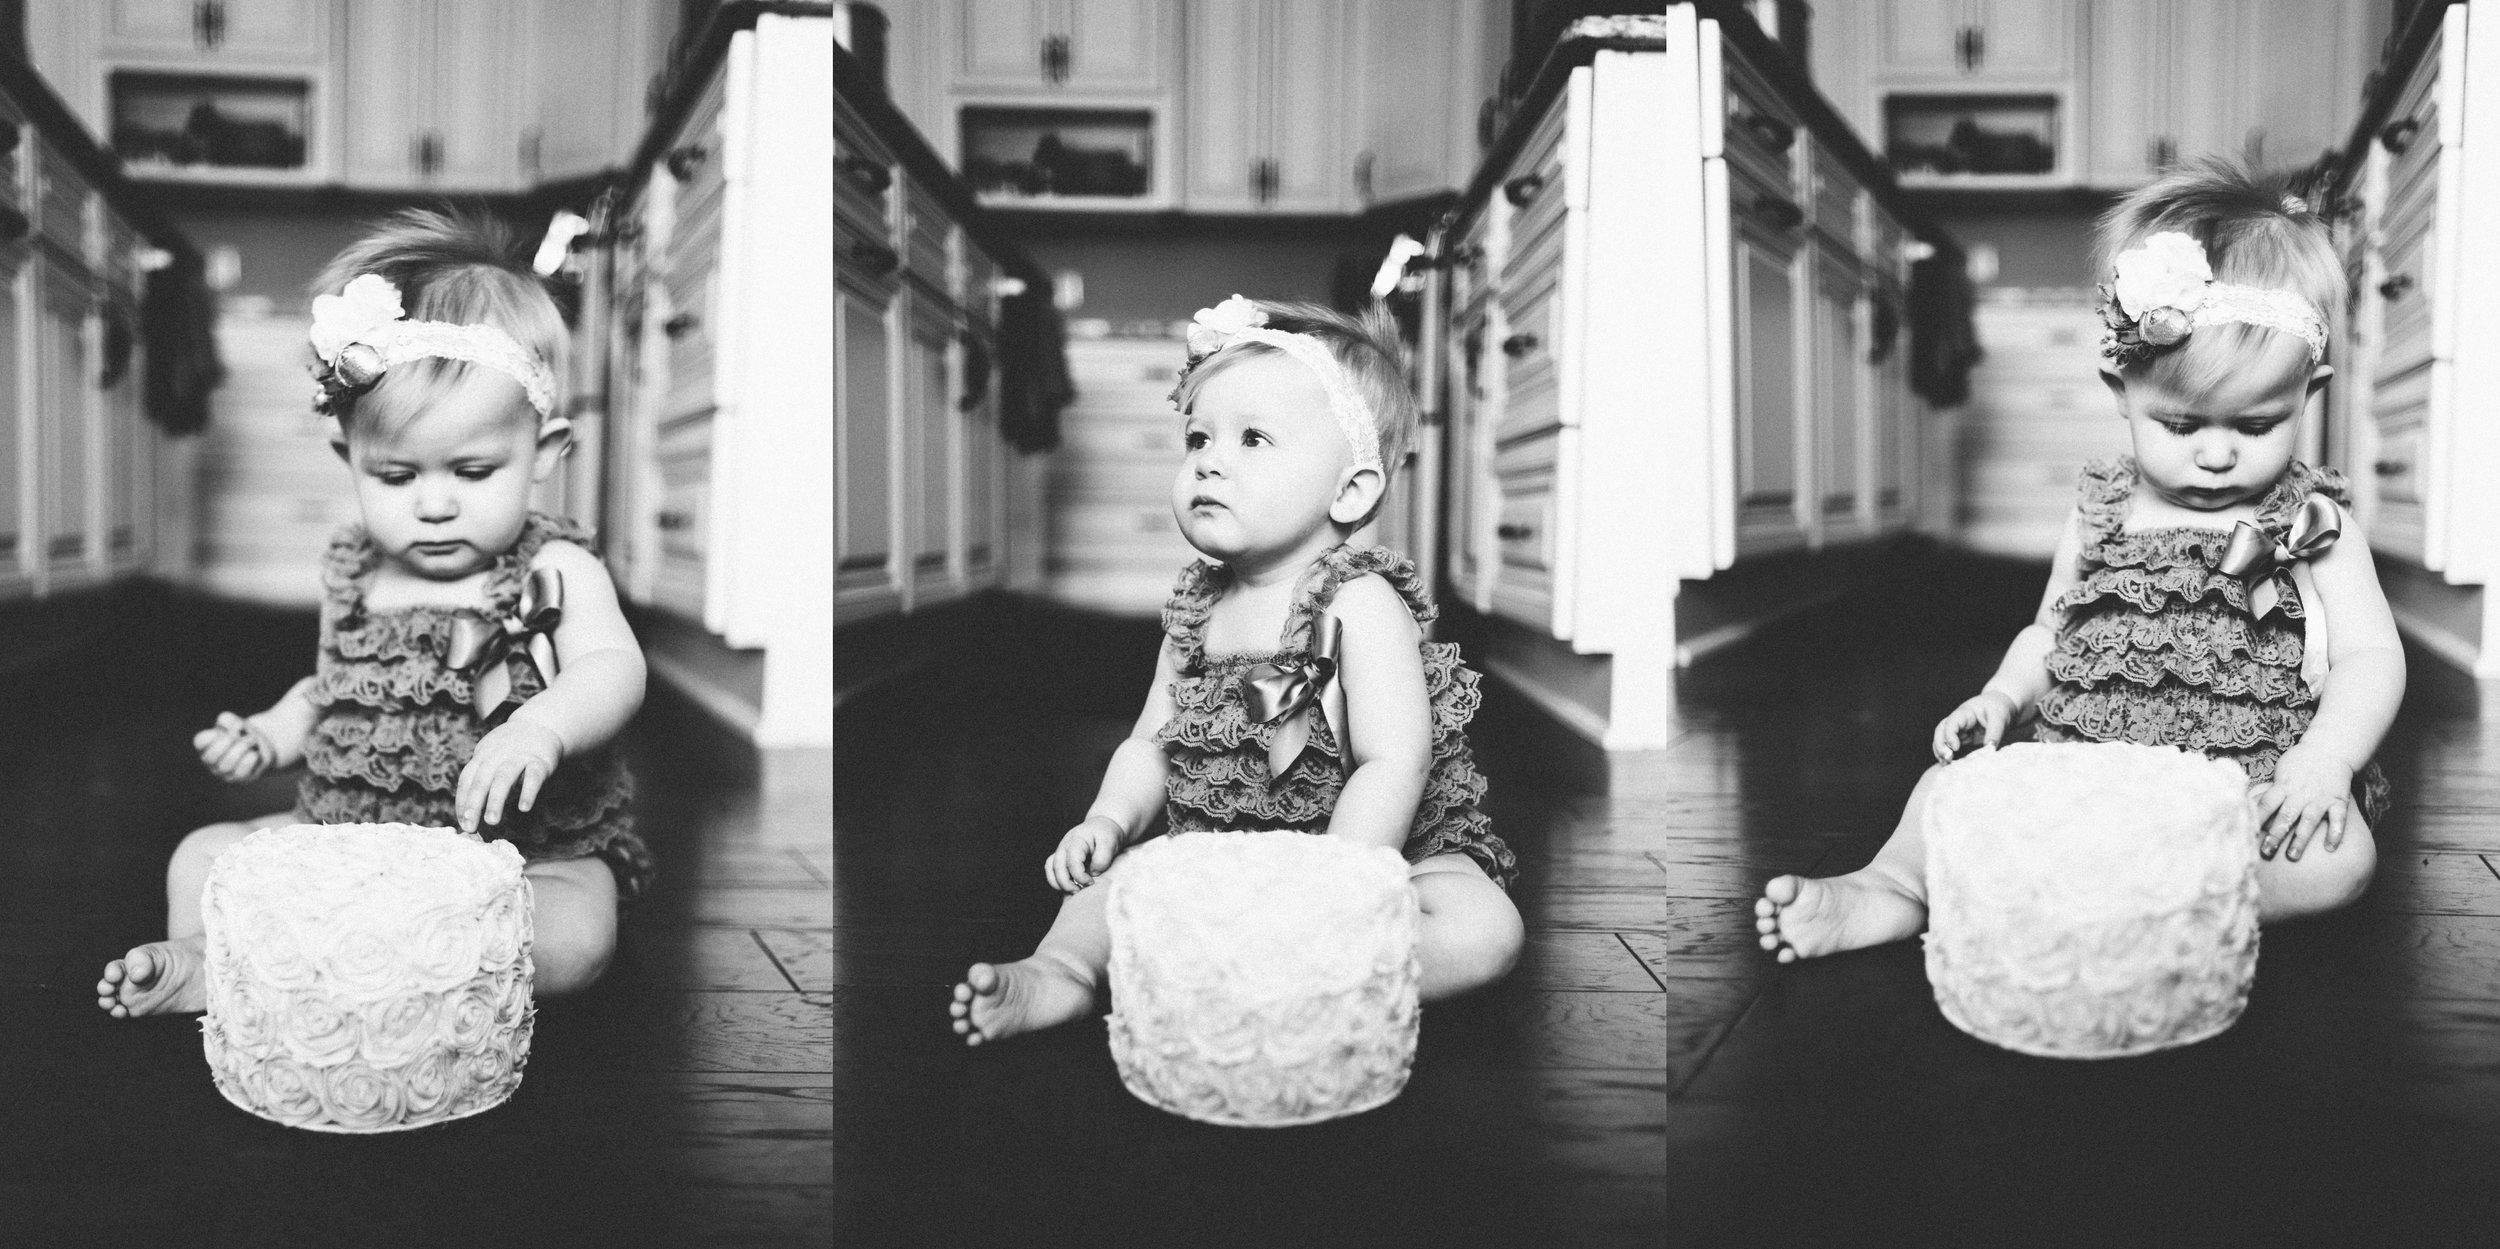 Michigan Family Photographer First Birthday Cakesmash Lifestyle Black and White Indoors (15).jpg